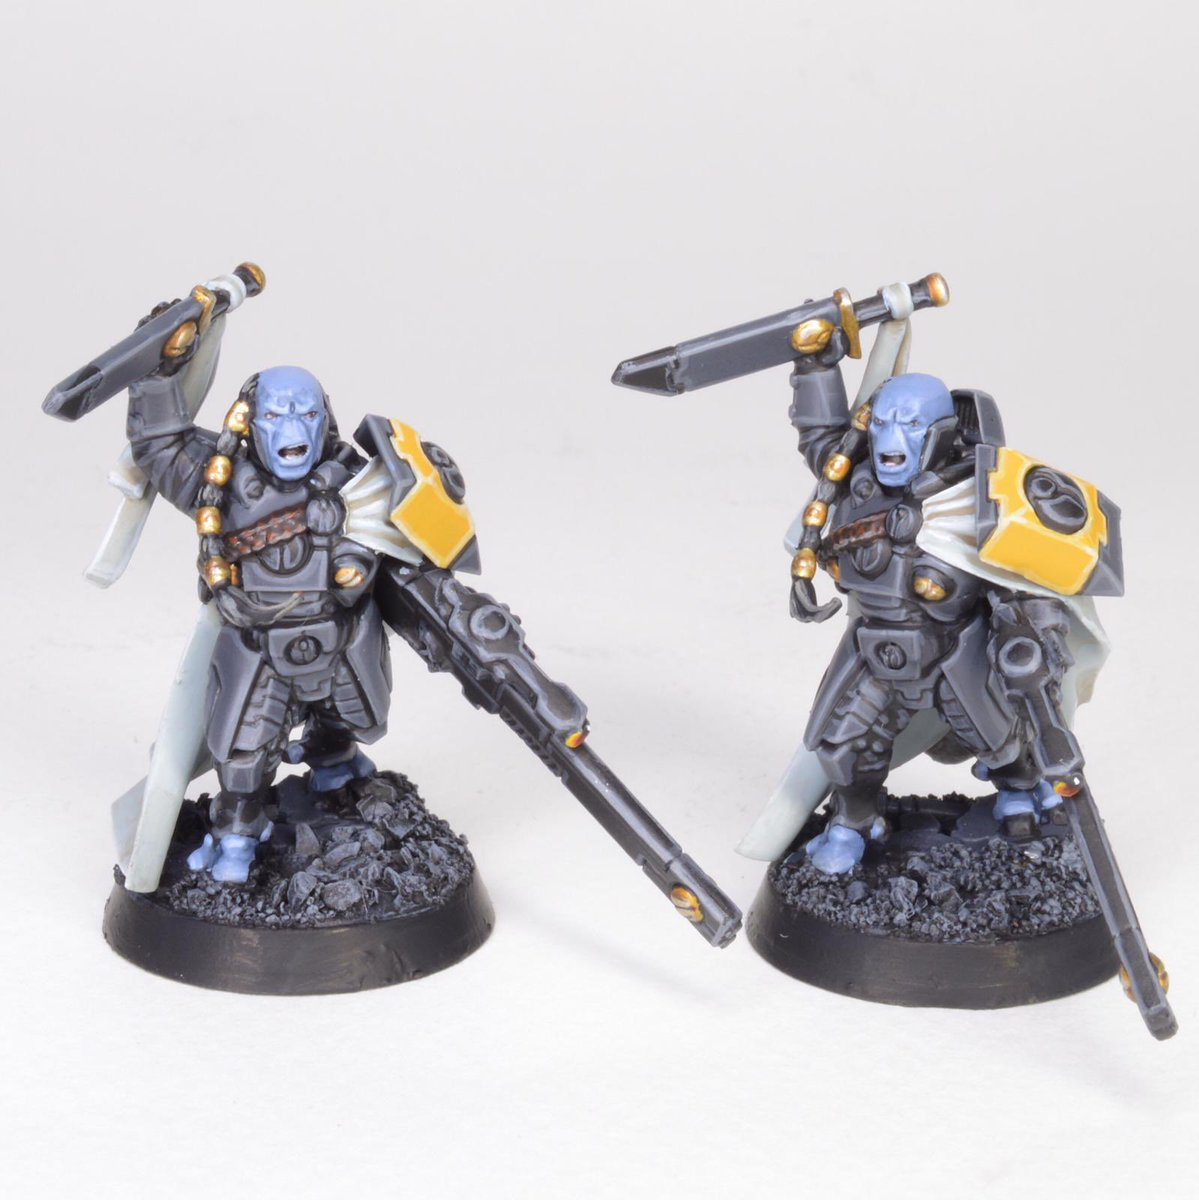 Next project is a Tau army in a really cool grey and yellow scheme, I really like this combination! Here's two finished Cadre Fireblades  #siegestudios #40k #warhammer #paintingwarhammer<br>http://pic.twitter.com/ssbY5g59ZK